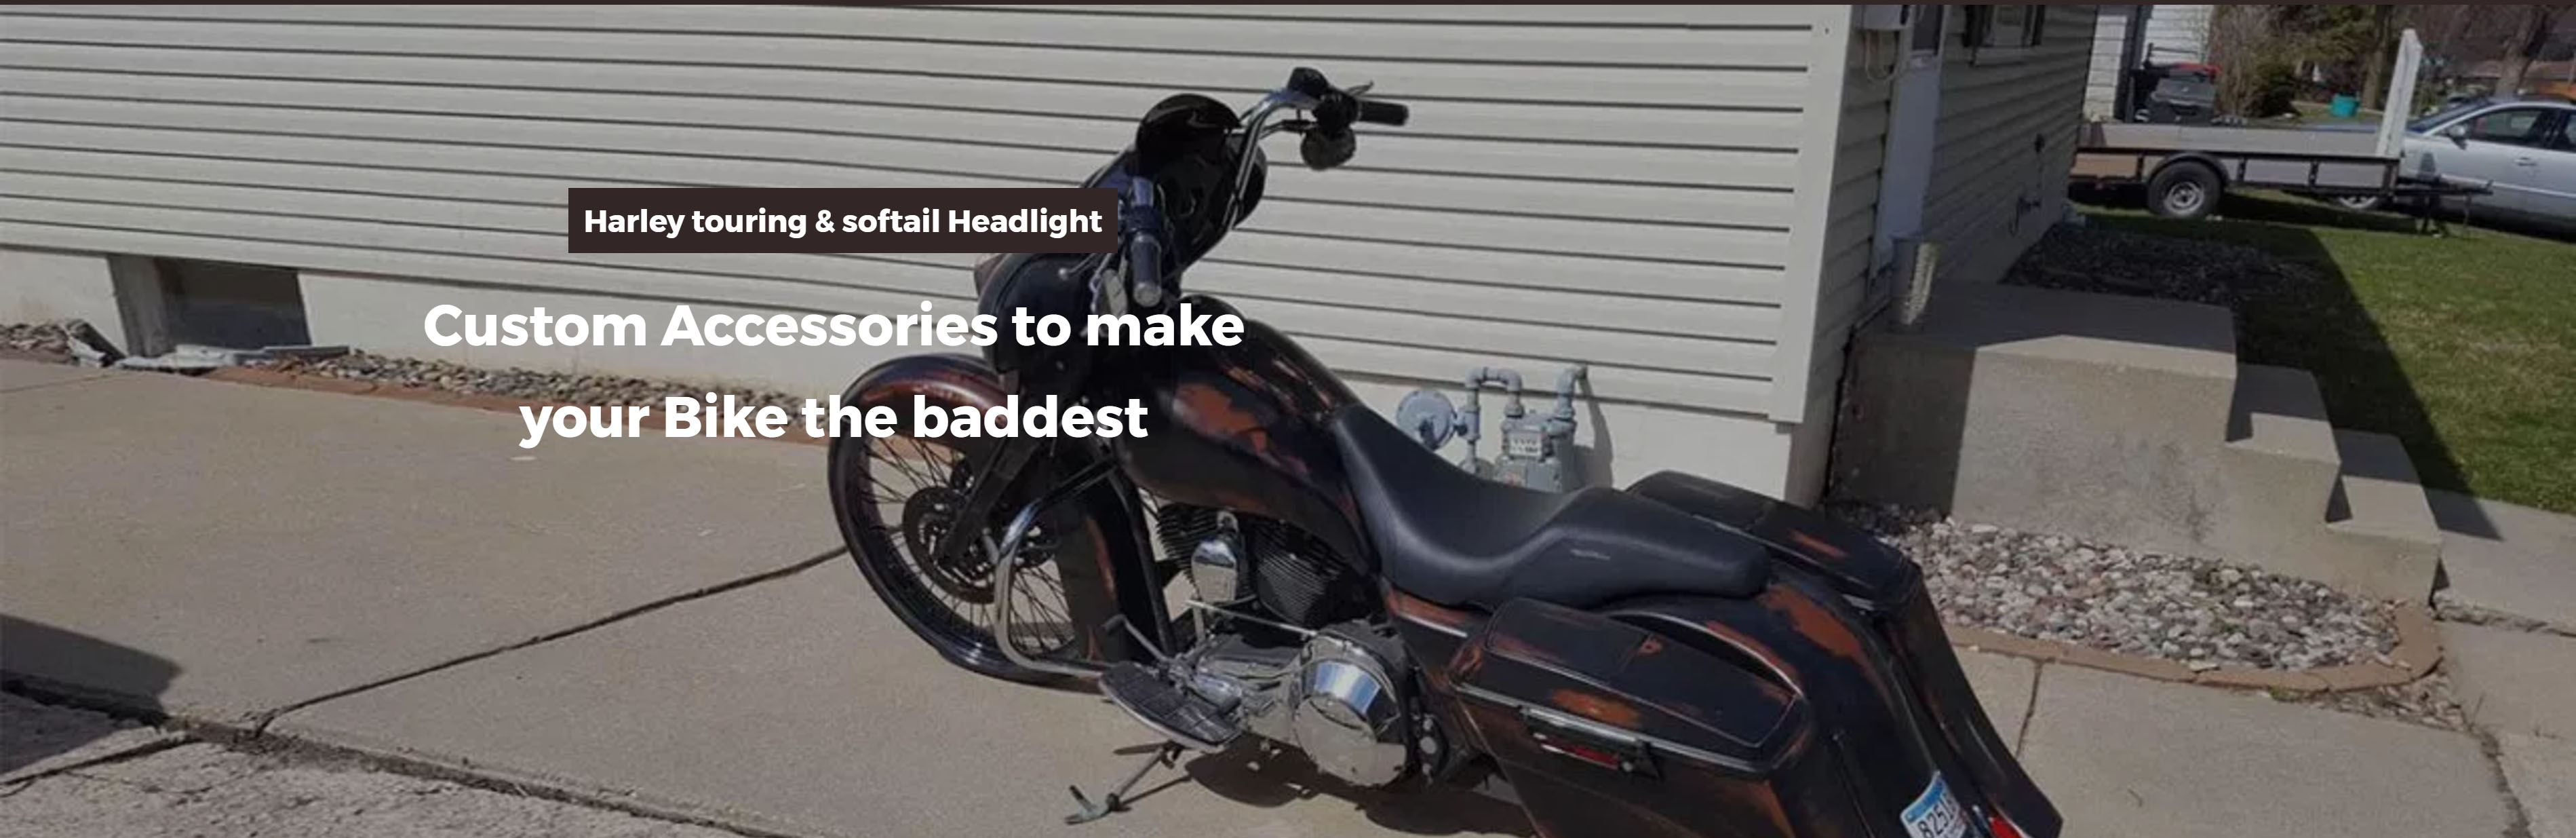 home baggers bags extended stretched saddlebags harley